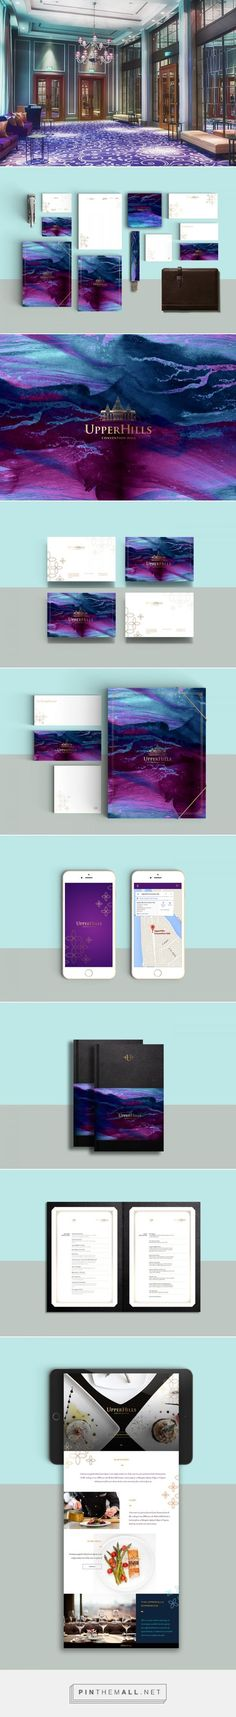 Upperhills Convention Hall Branding by Nero Graphic Atelier | Fivestar Branding – Design and Branding Agency & Inspiration Gallery